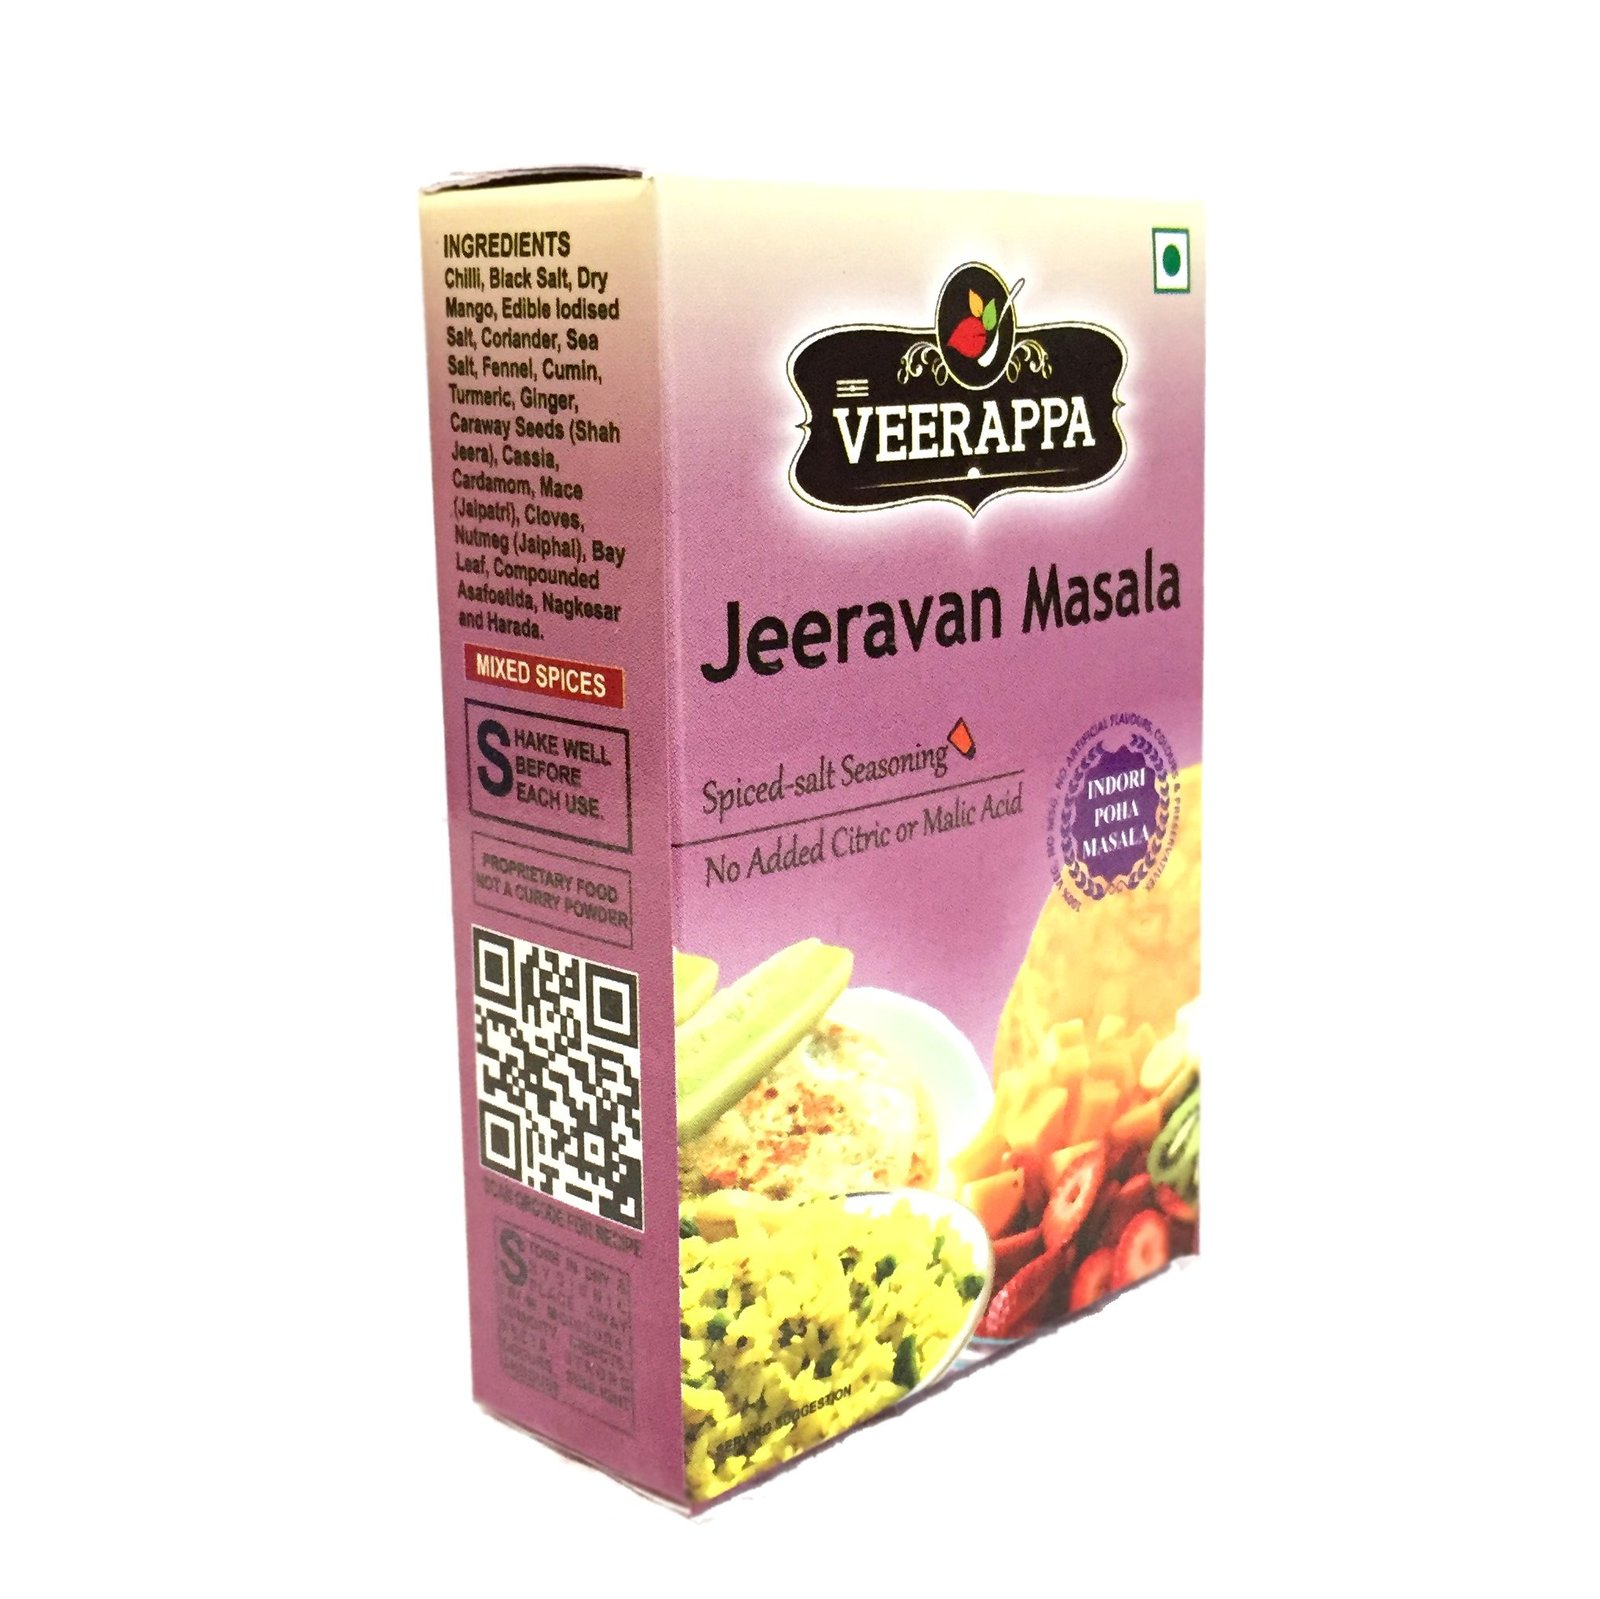 Appetizer and Seasoning Box (Pack of 4 Masala - Chai, Jaljira, Chat, Jeeravan)